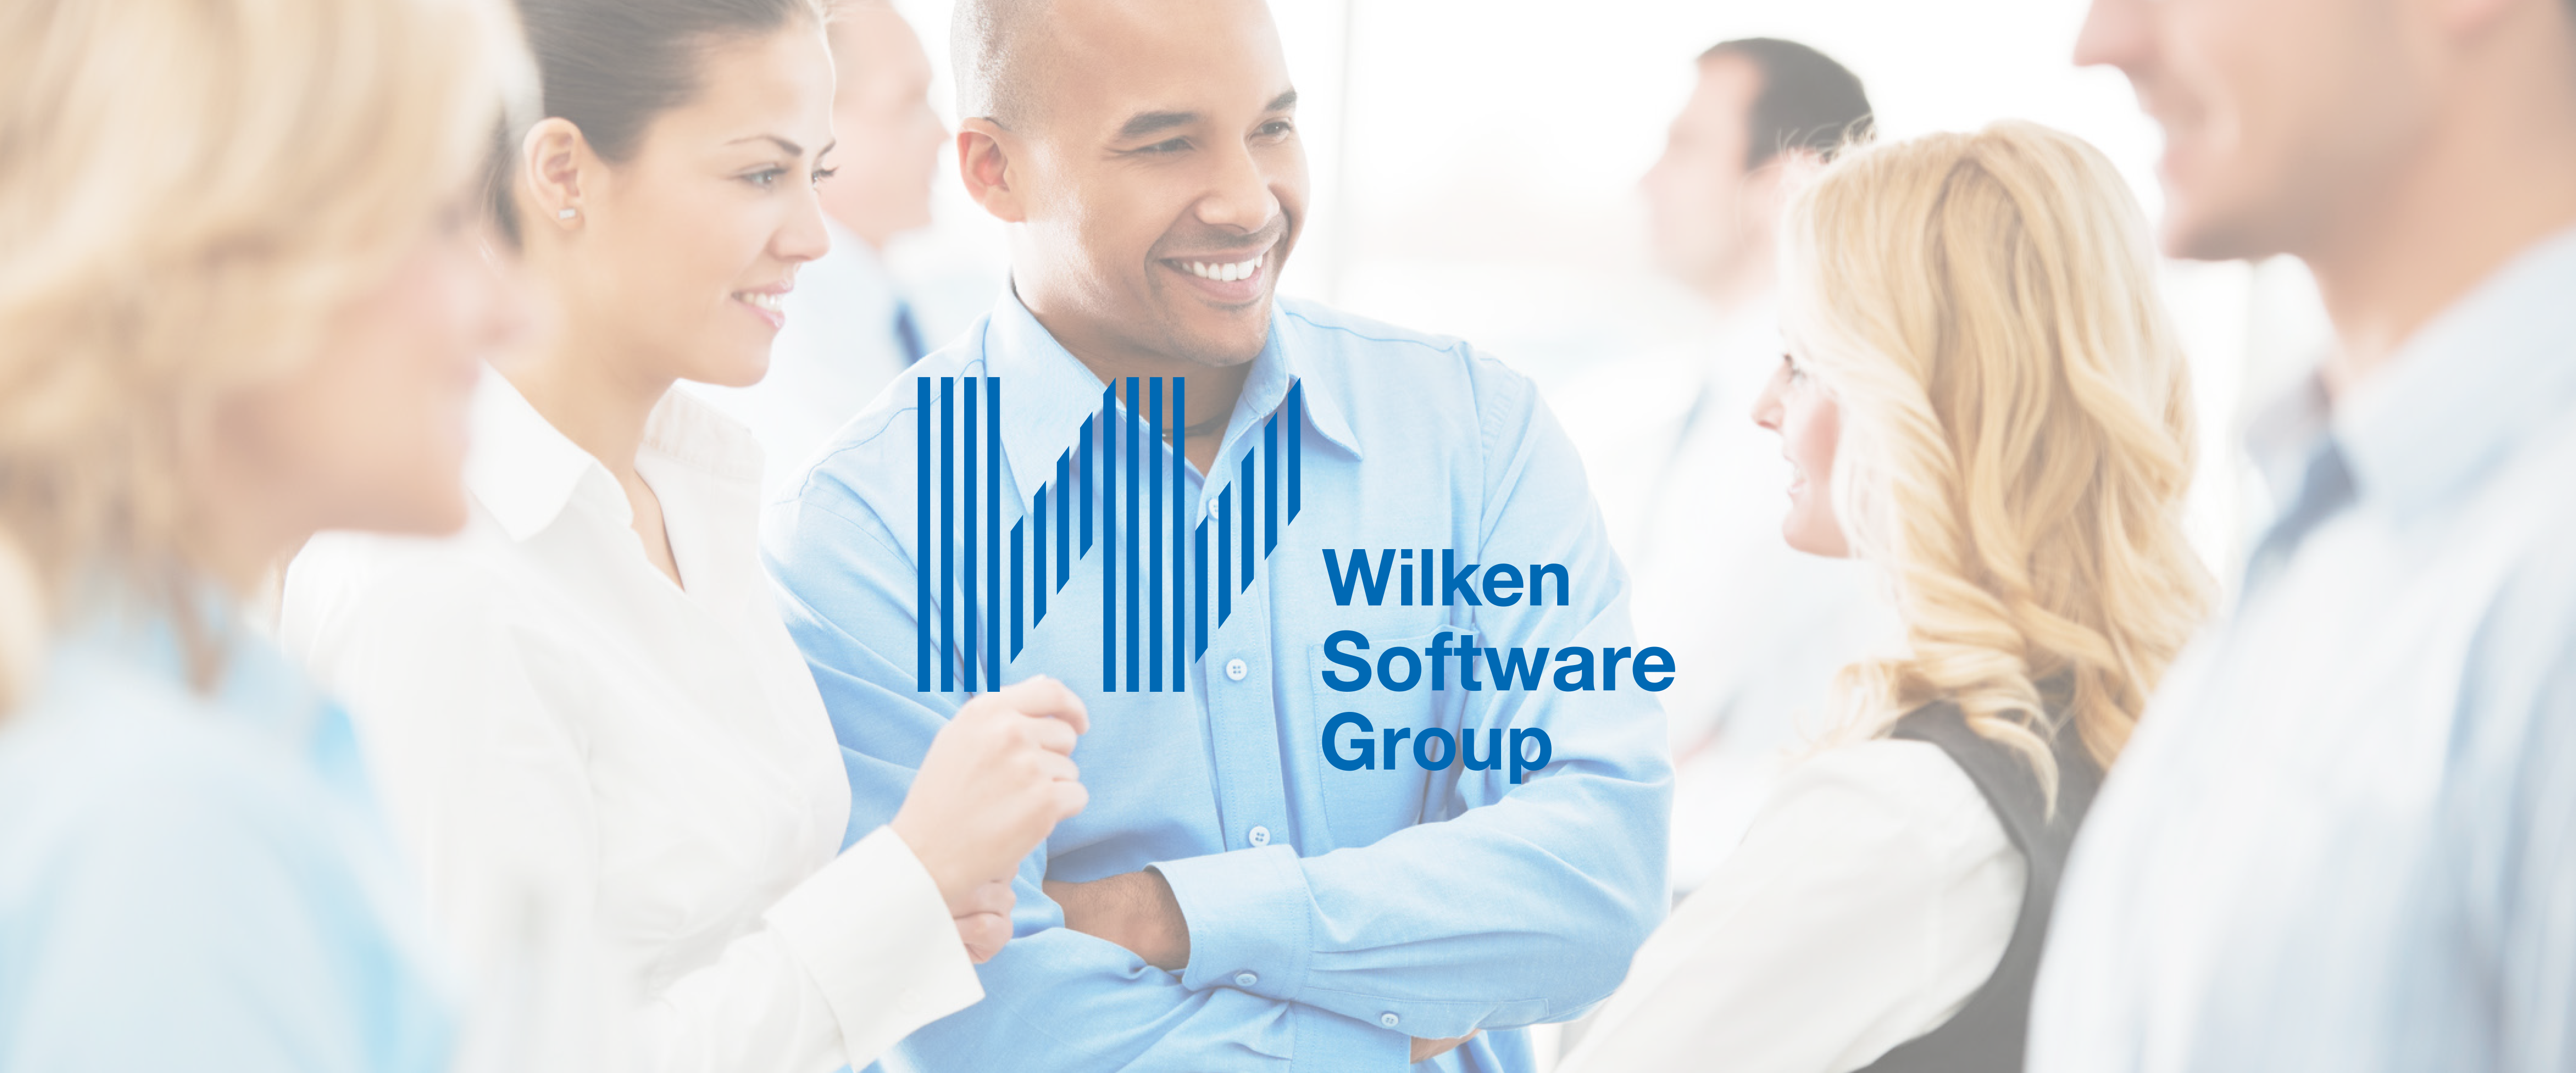 Wilken Kundenforum 2019